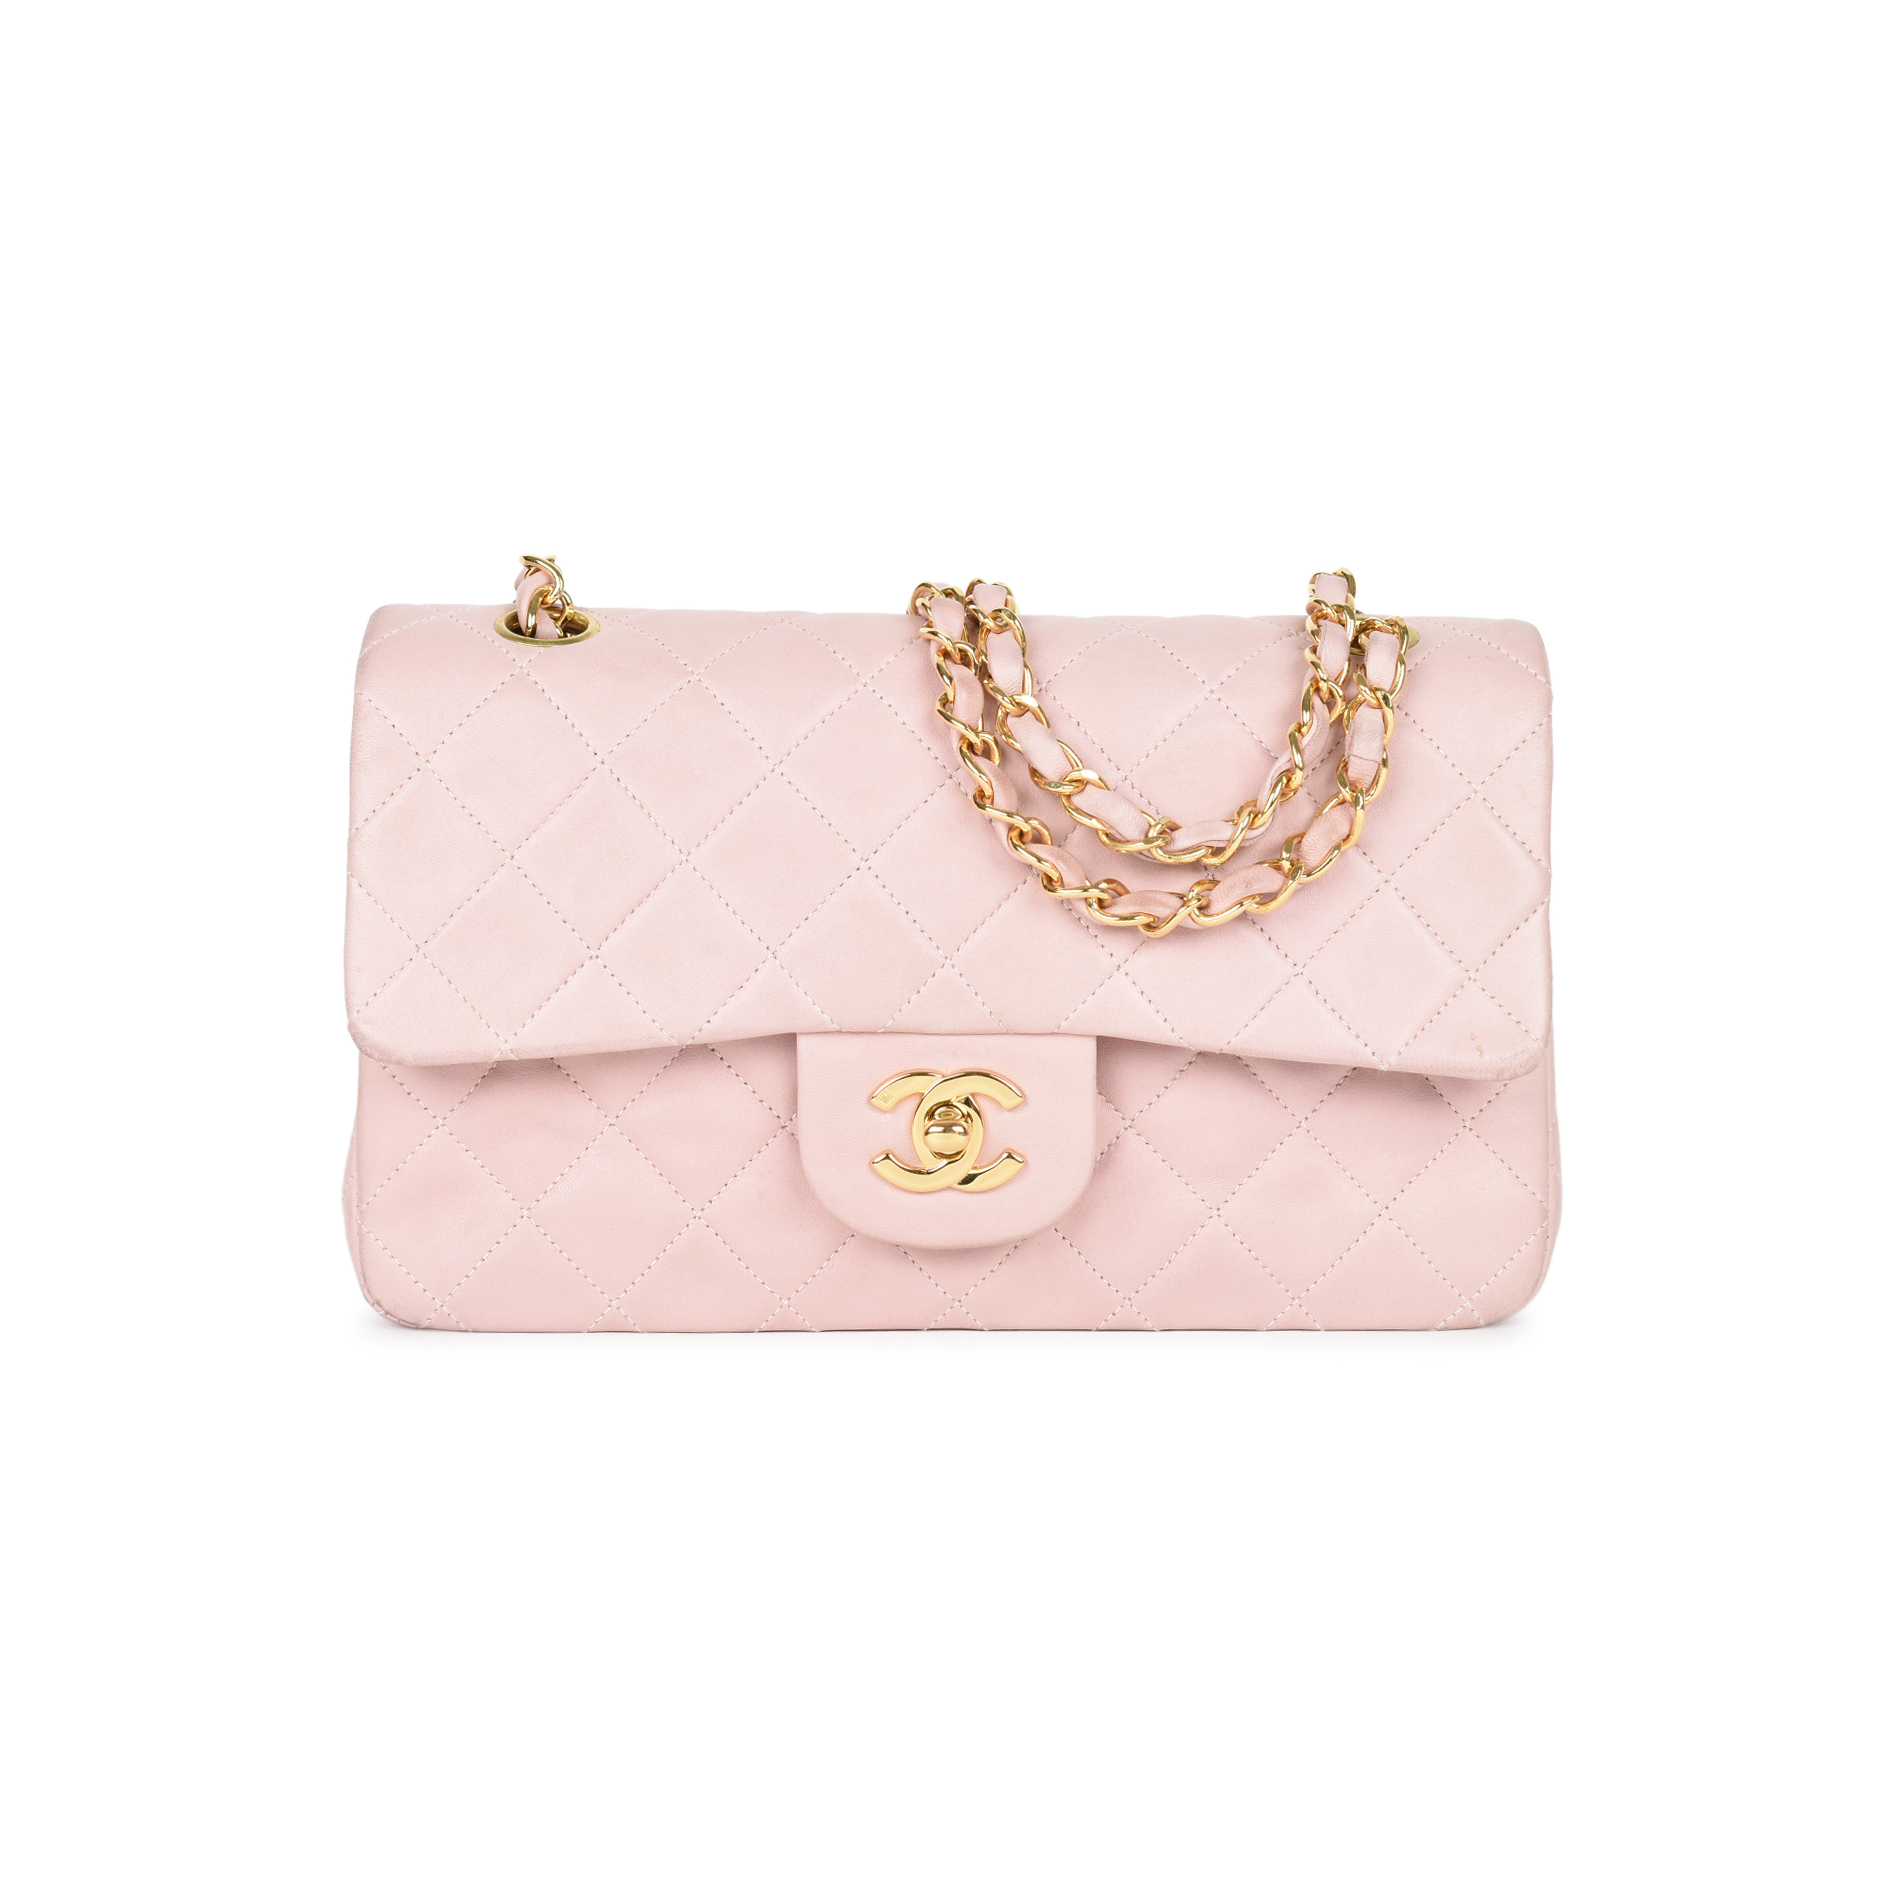 Authentic Second Hand Chanel Baby Pink Small Classic Flap